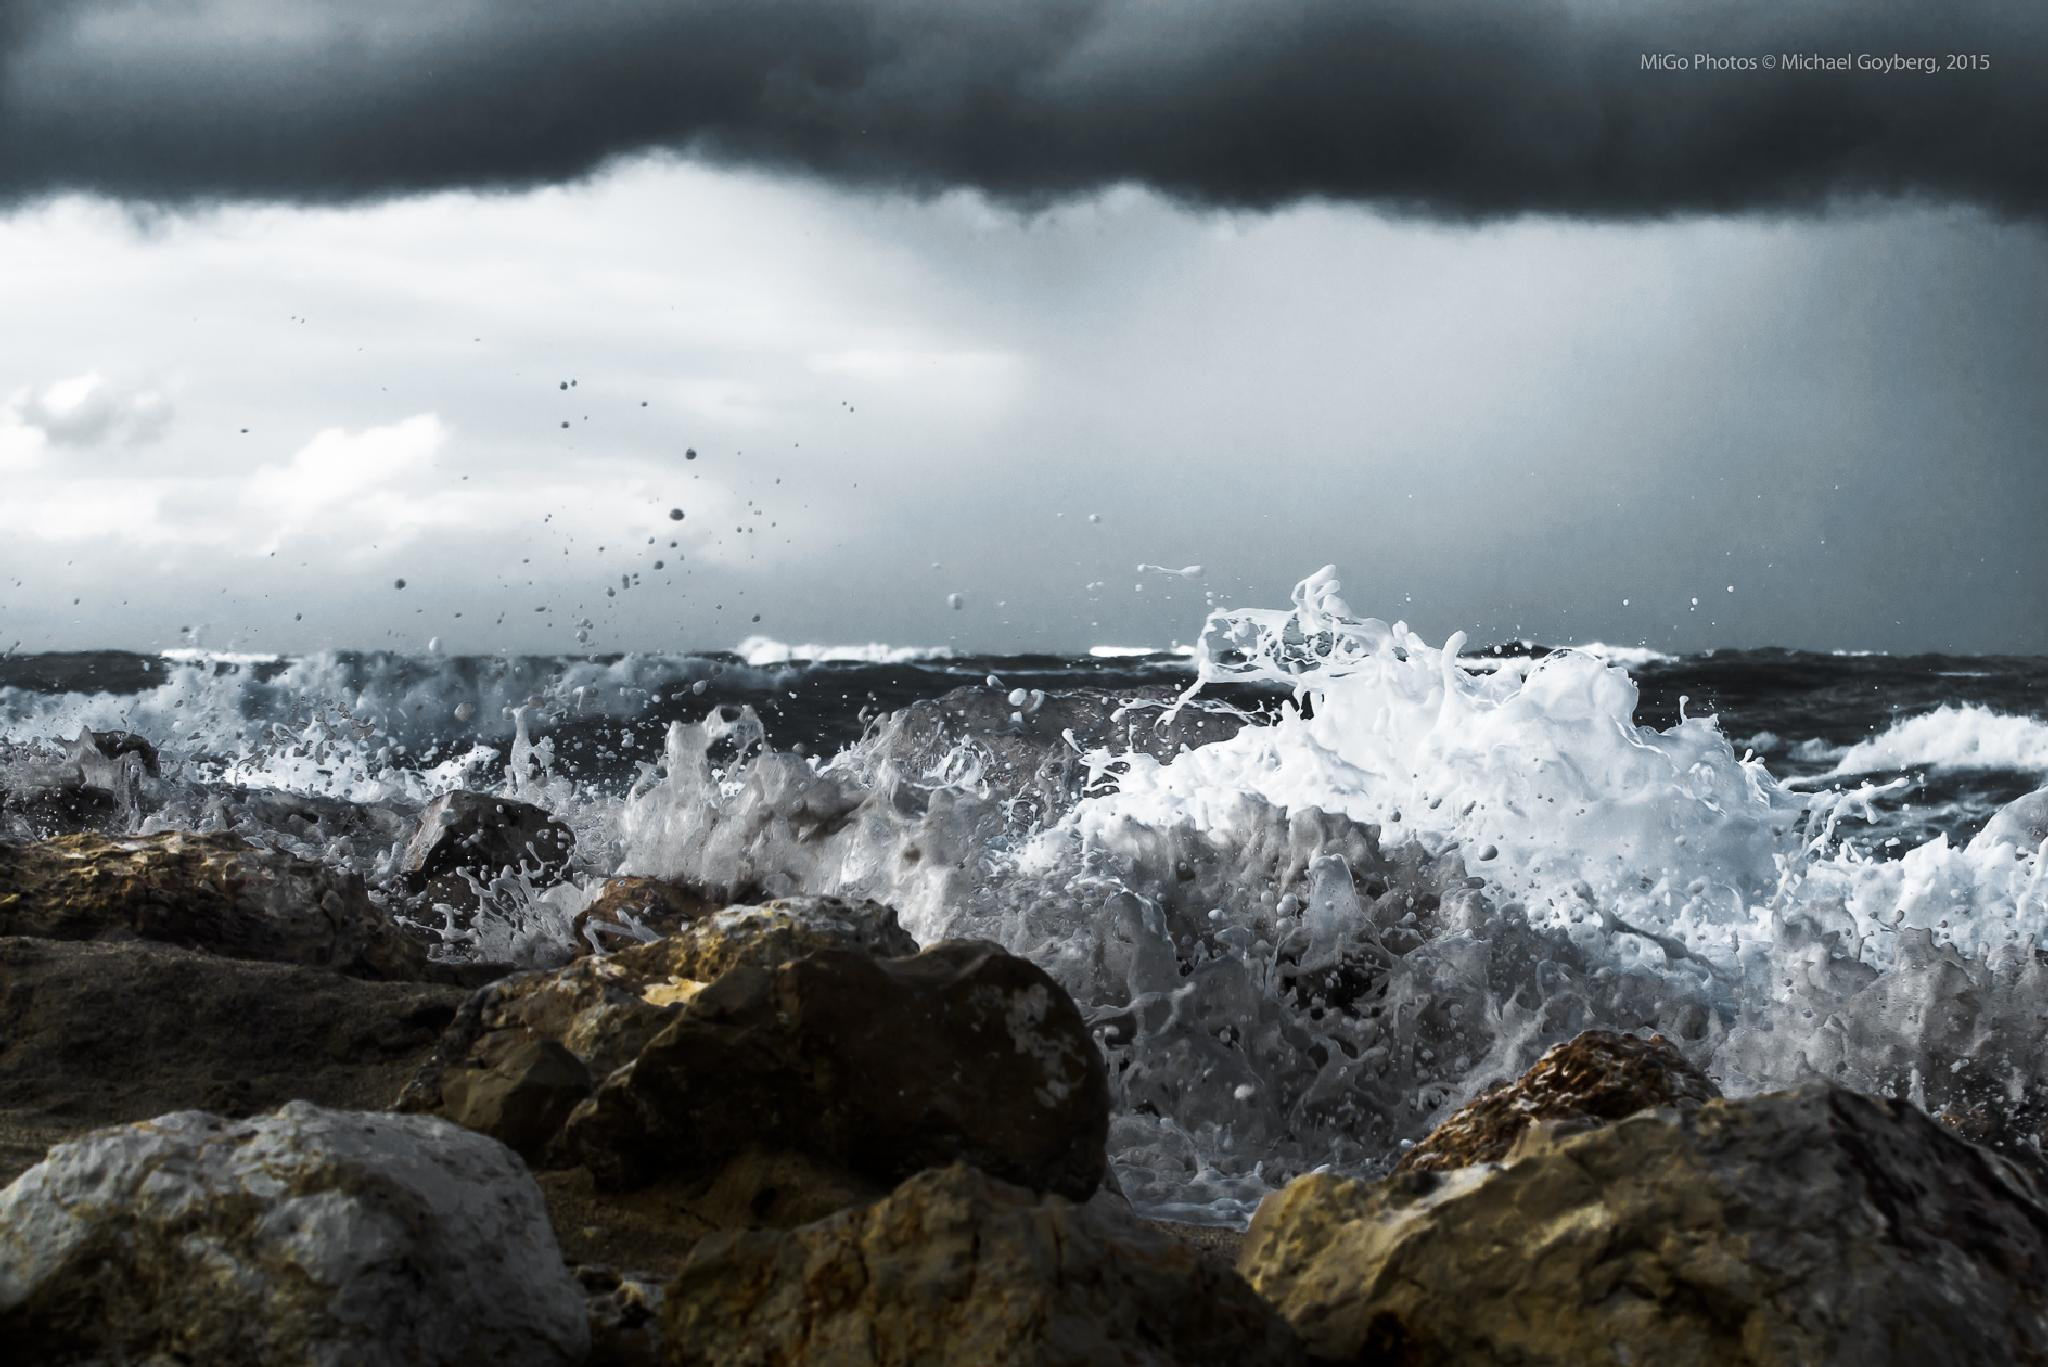 The strength of the Sea by Michael Goyberg